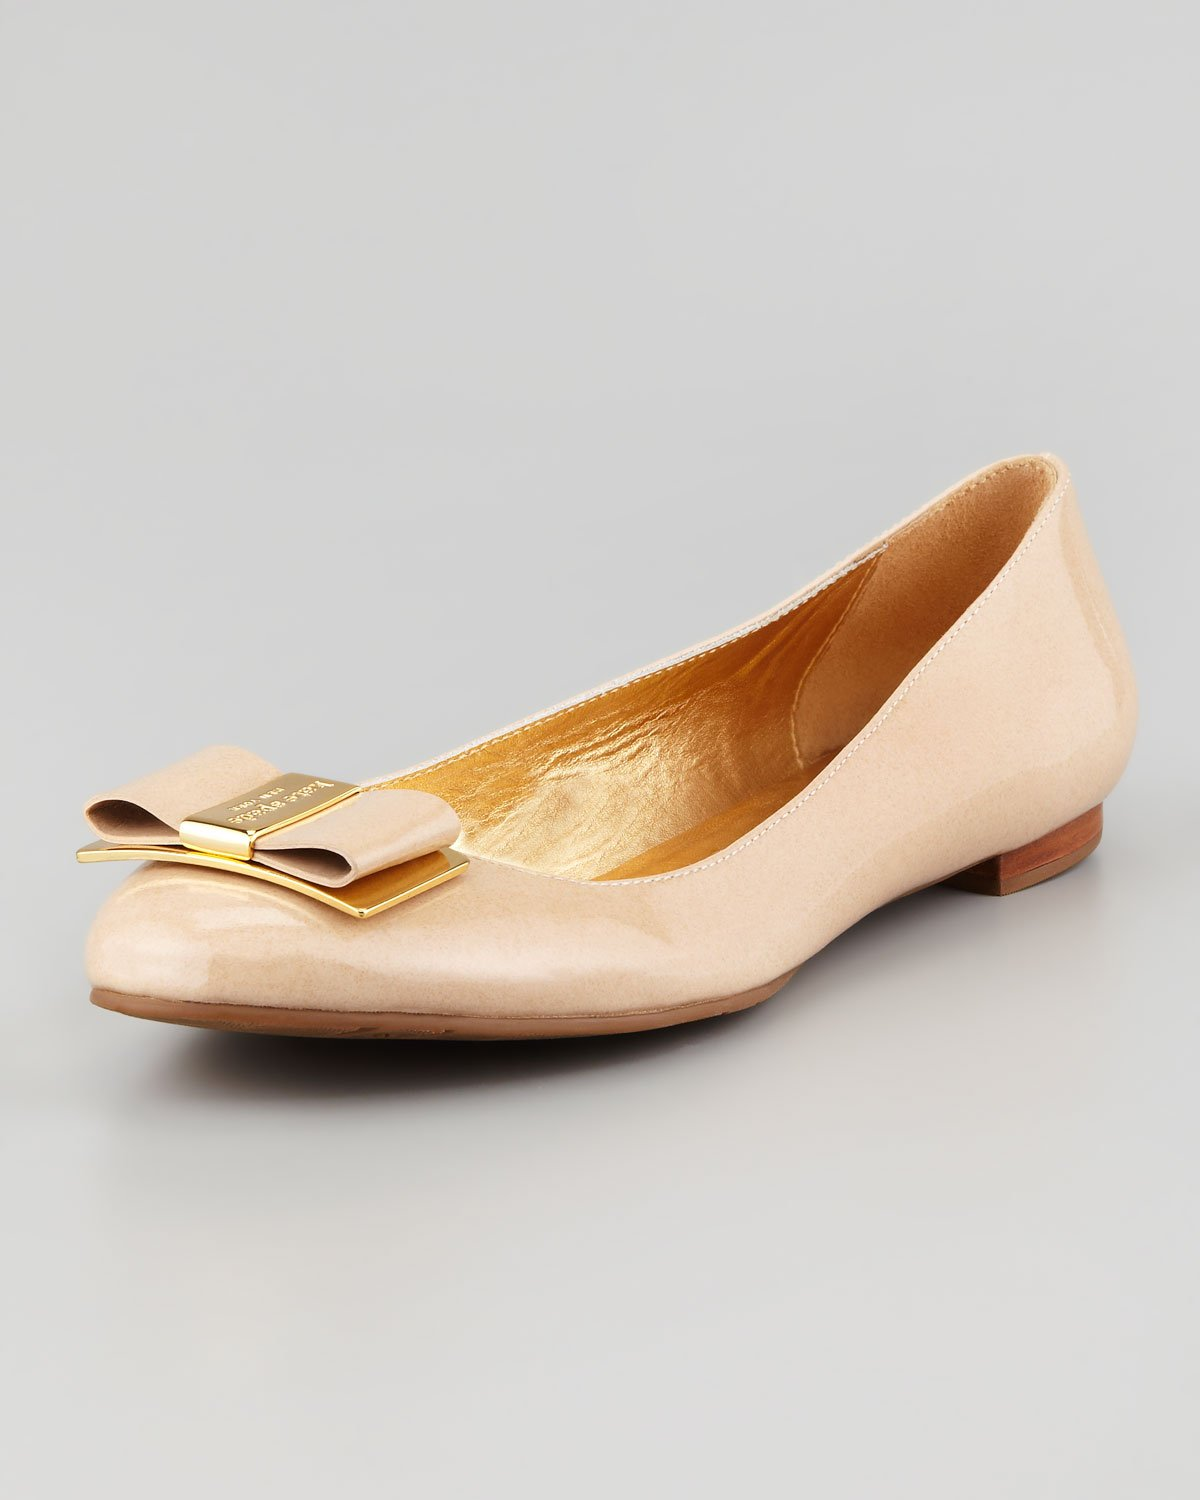 c29866478b Kate Spade Trophy Bow Patent Leather Flat in Natural - Lyst